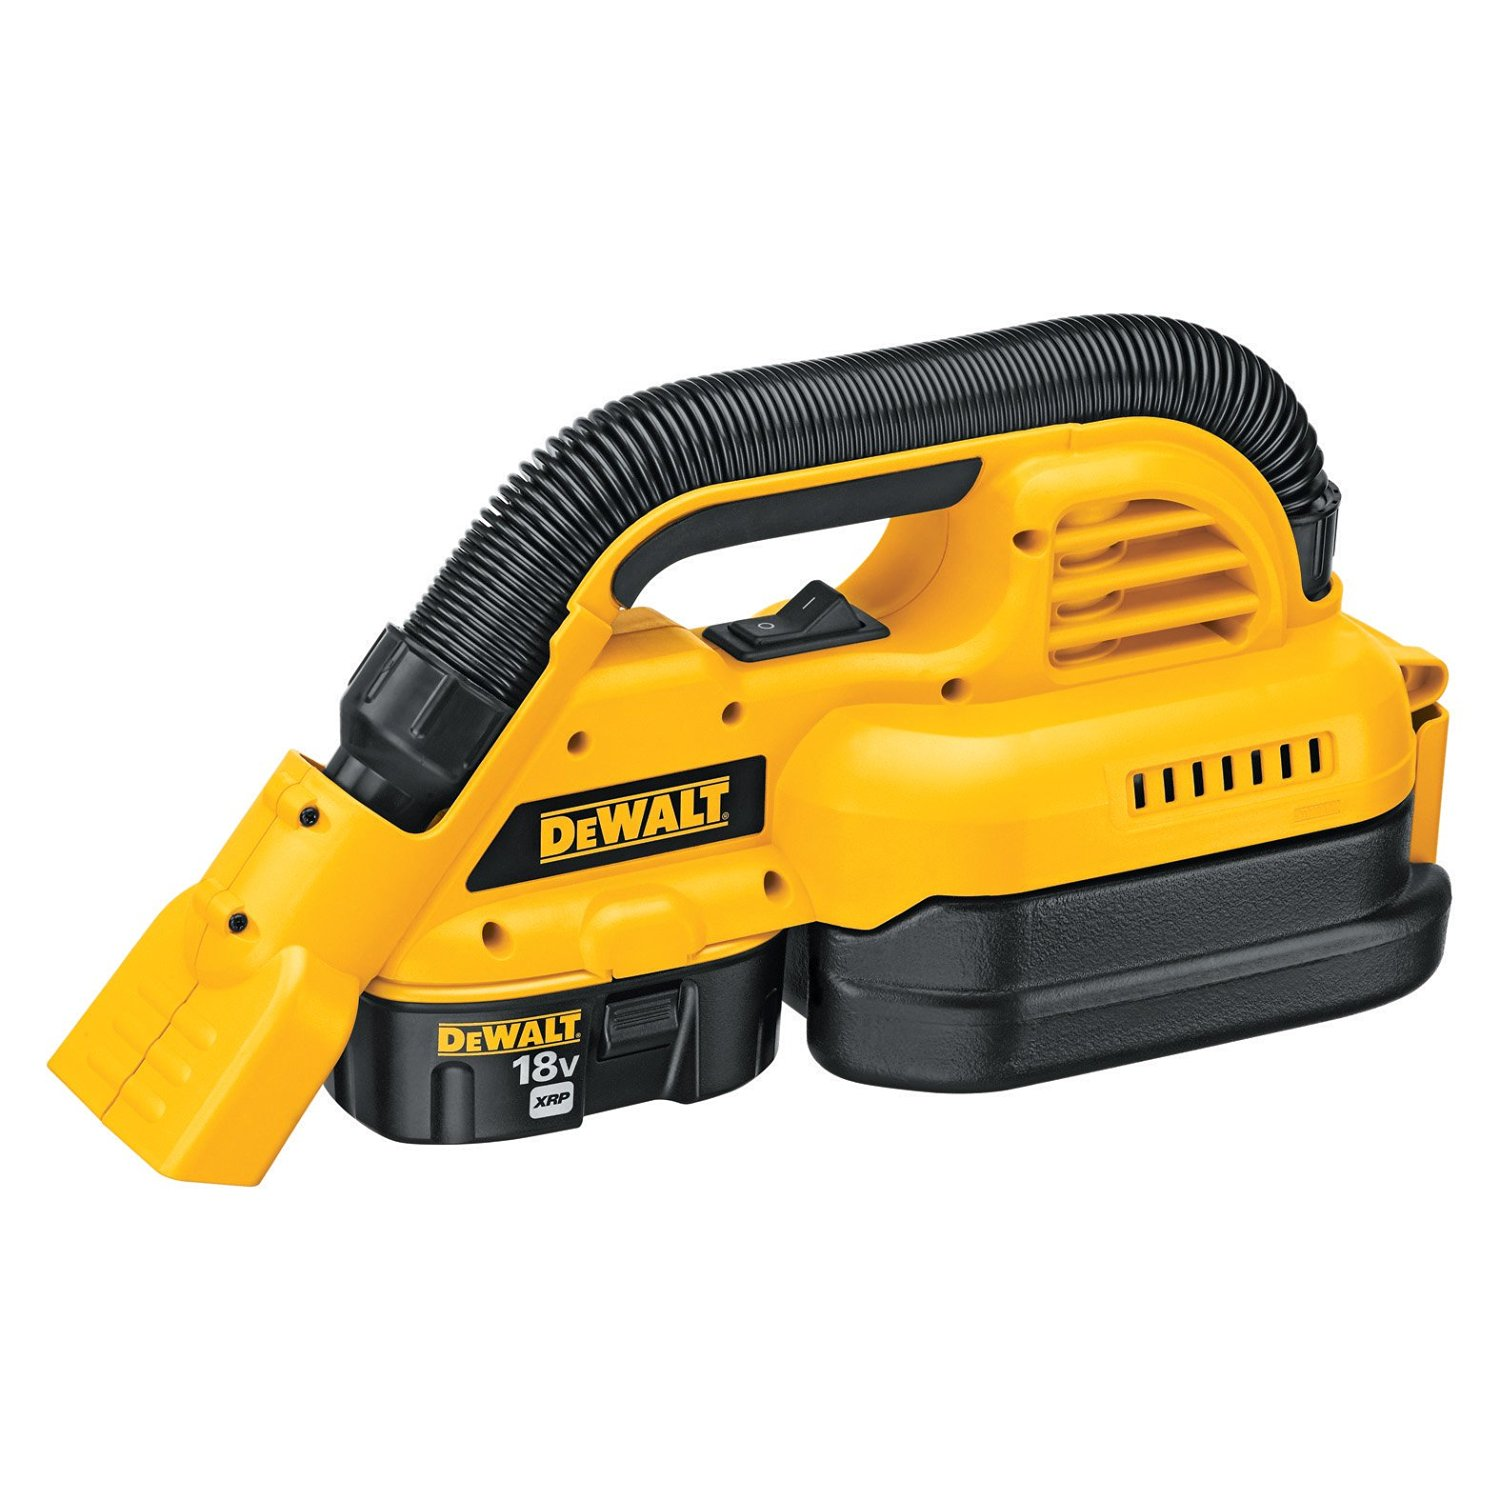 DeWalt 1/2 Gallon 18V Wet/Dry Shop Vacuum